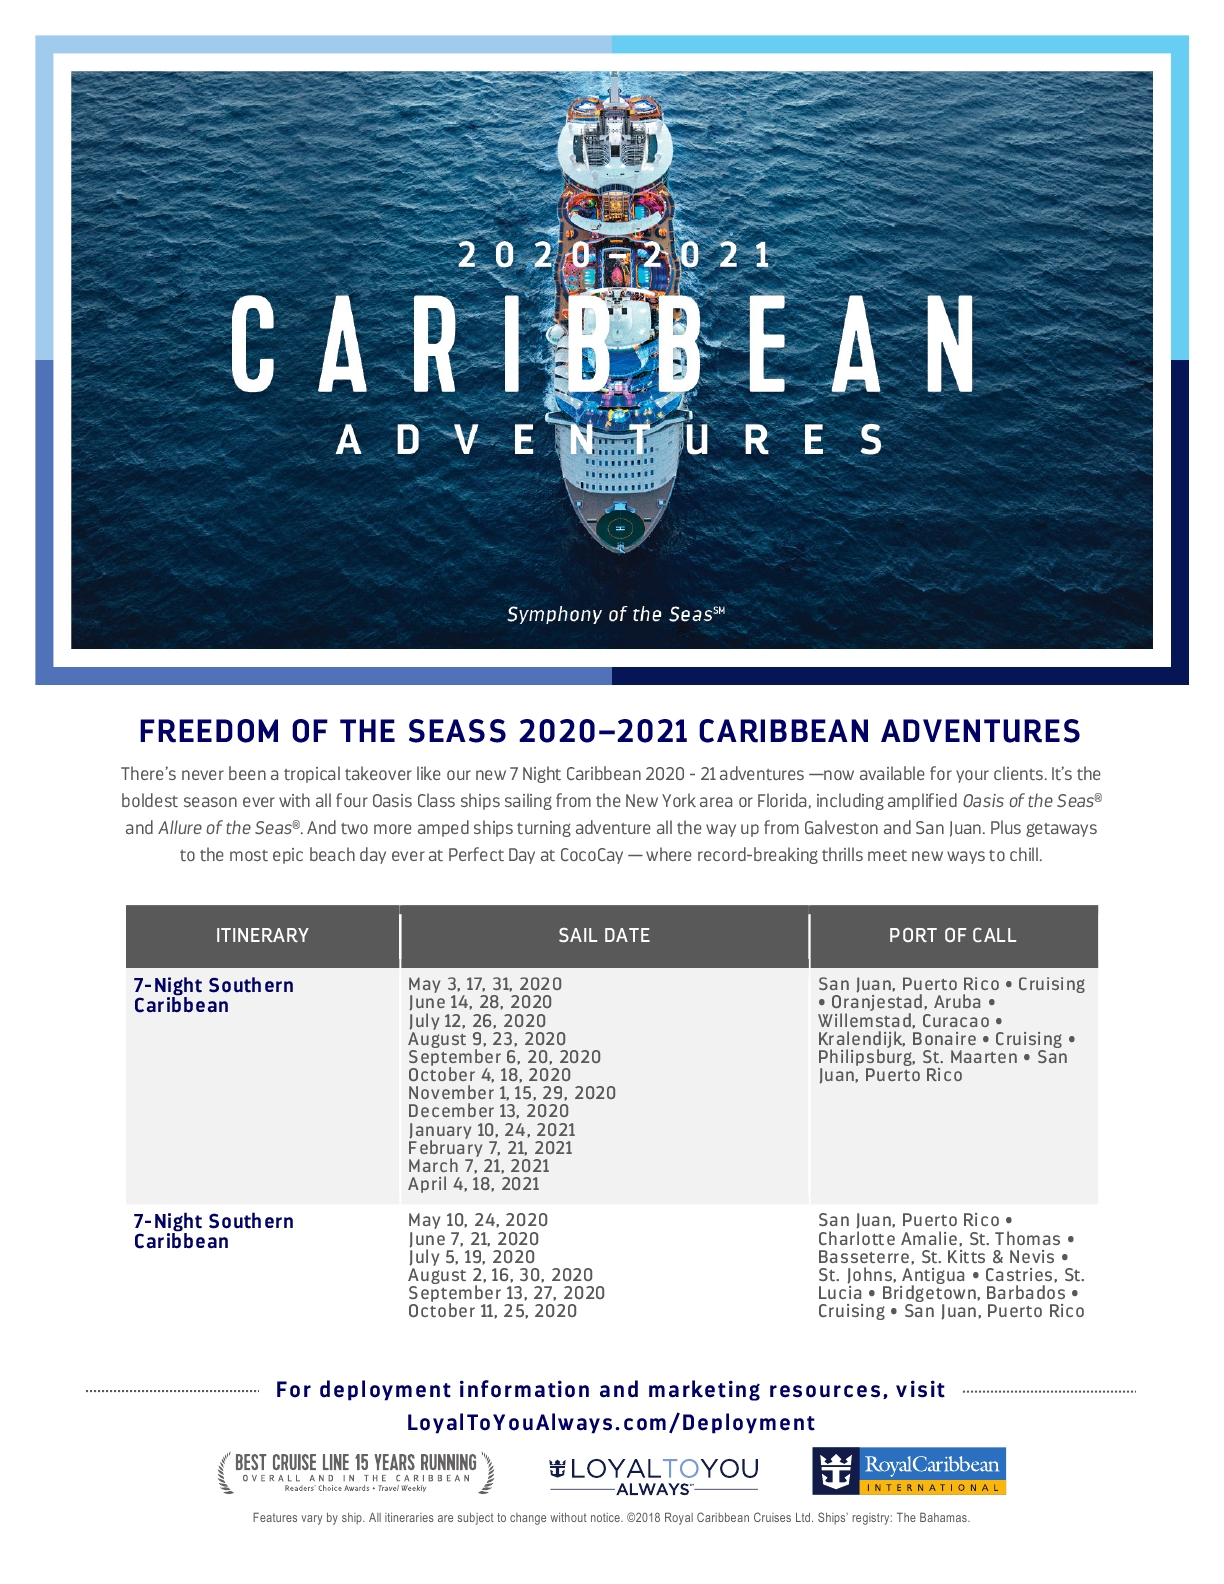 ROYAL CARIBBEAN CARIBE 2020/2021